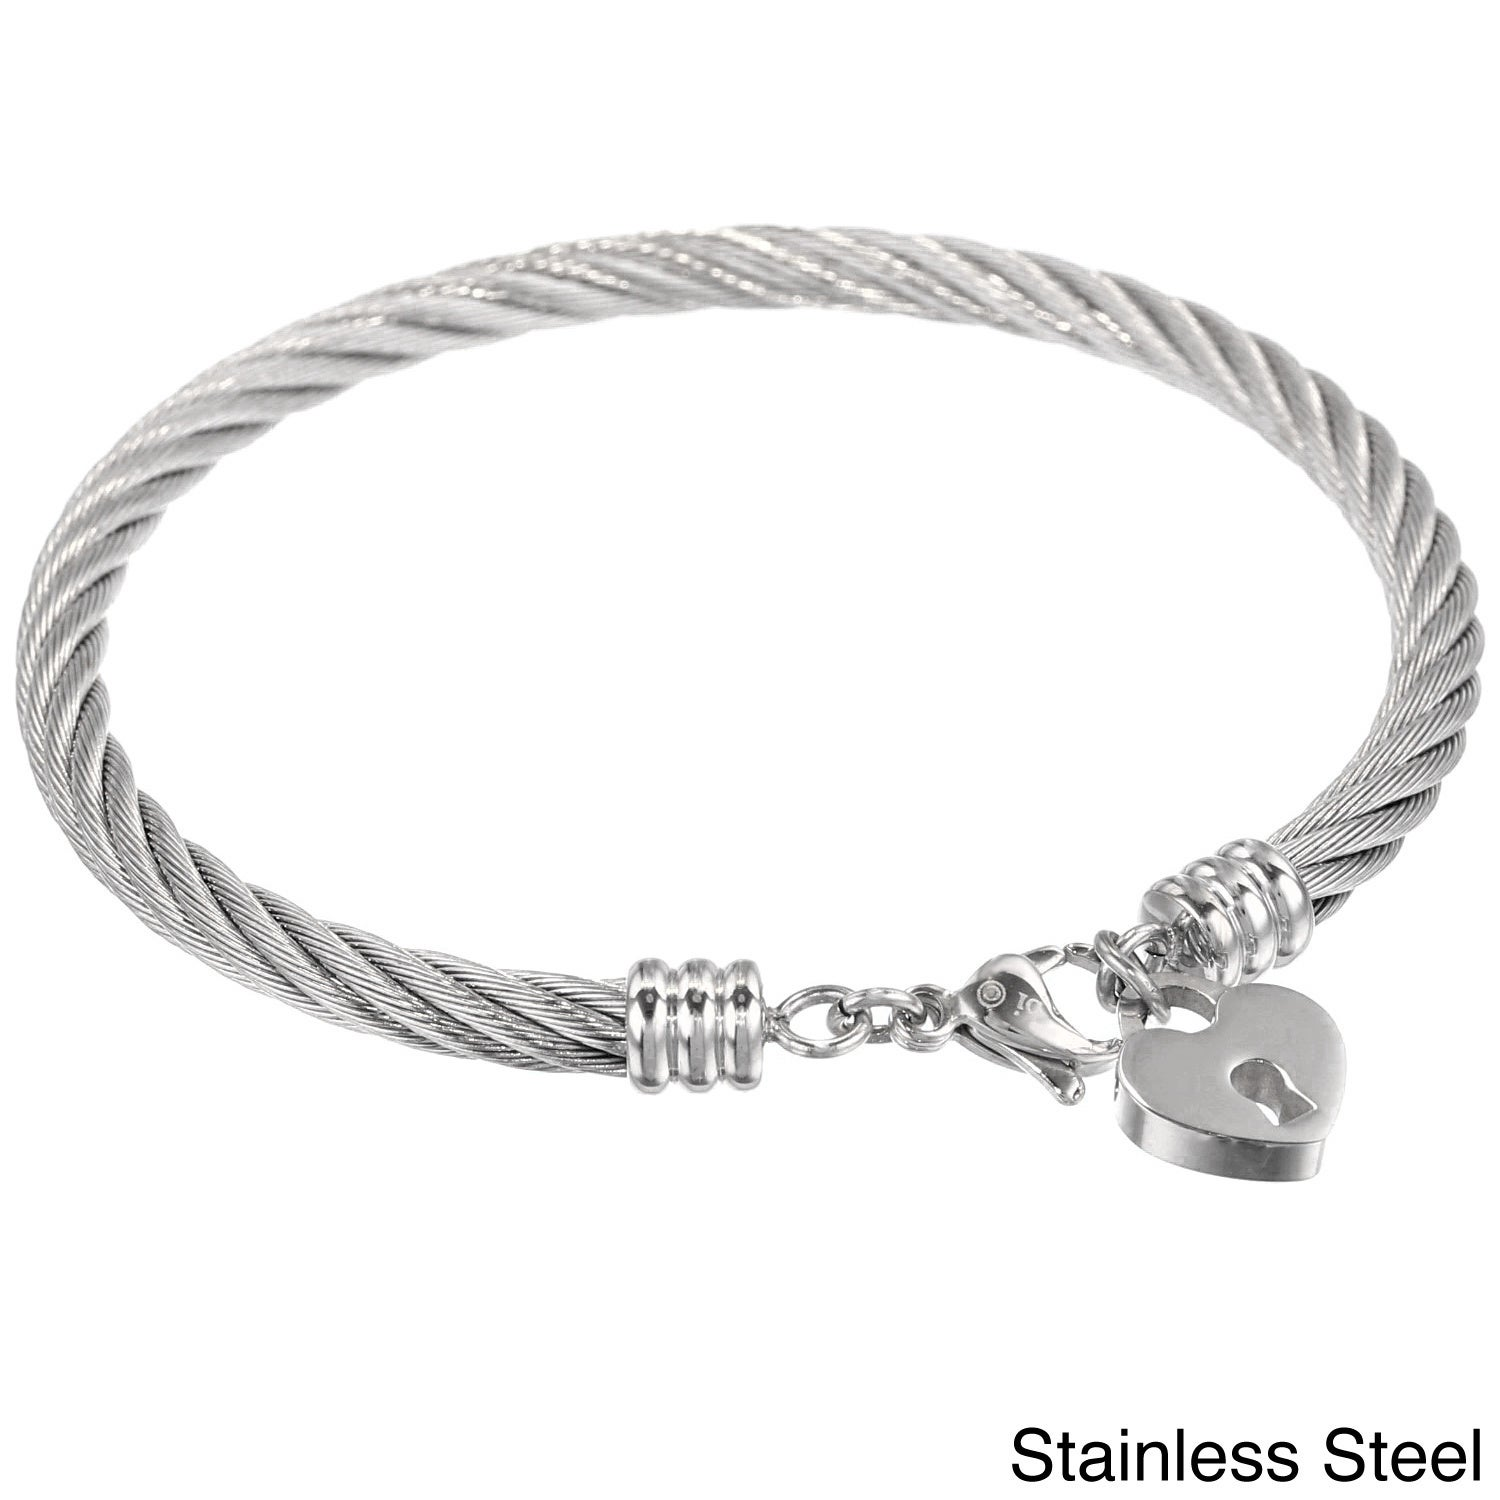 fits charm stainless fullxfull il steel wrist to long about medium bangle heart listing small bangles bracelets bracelet blank